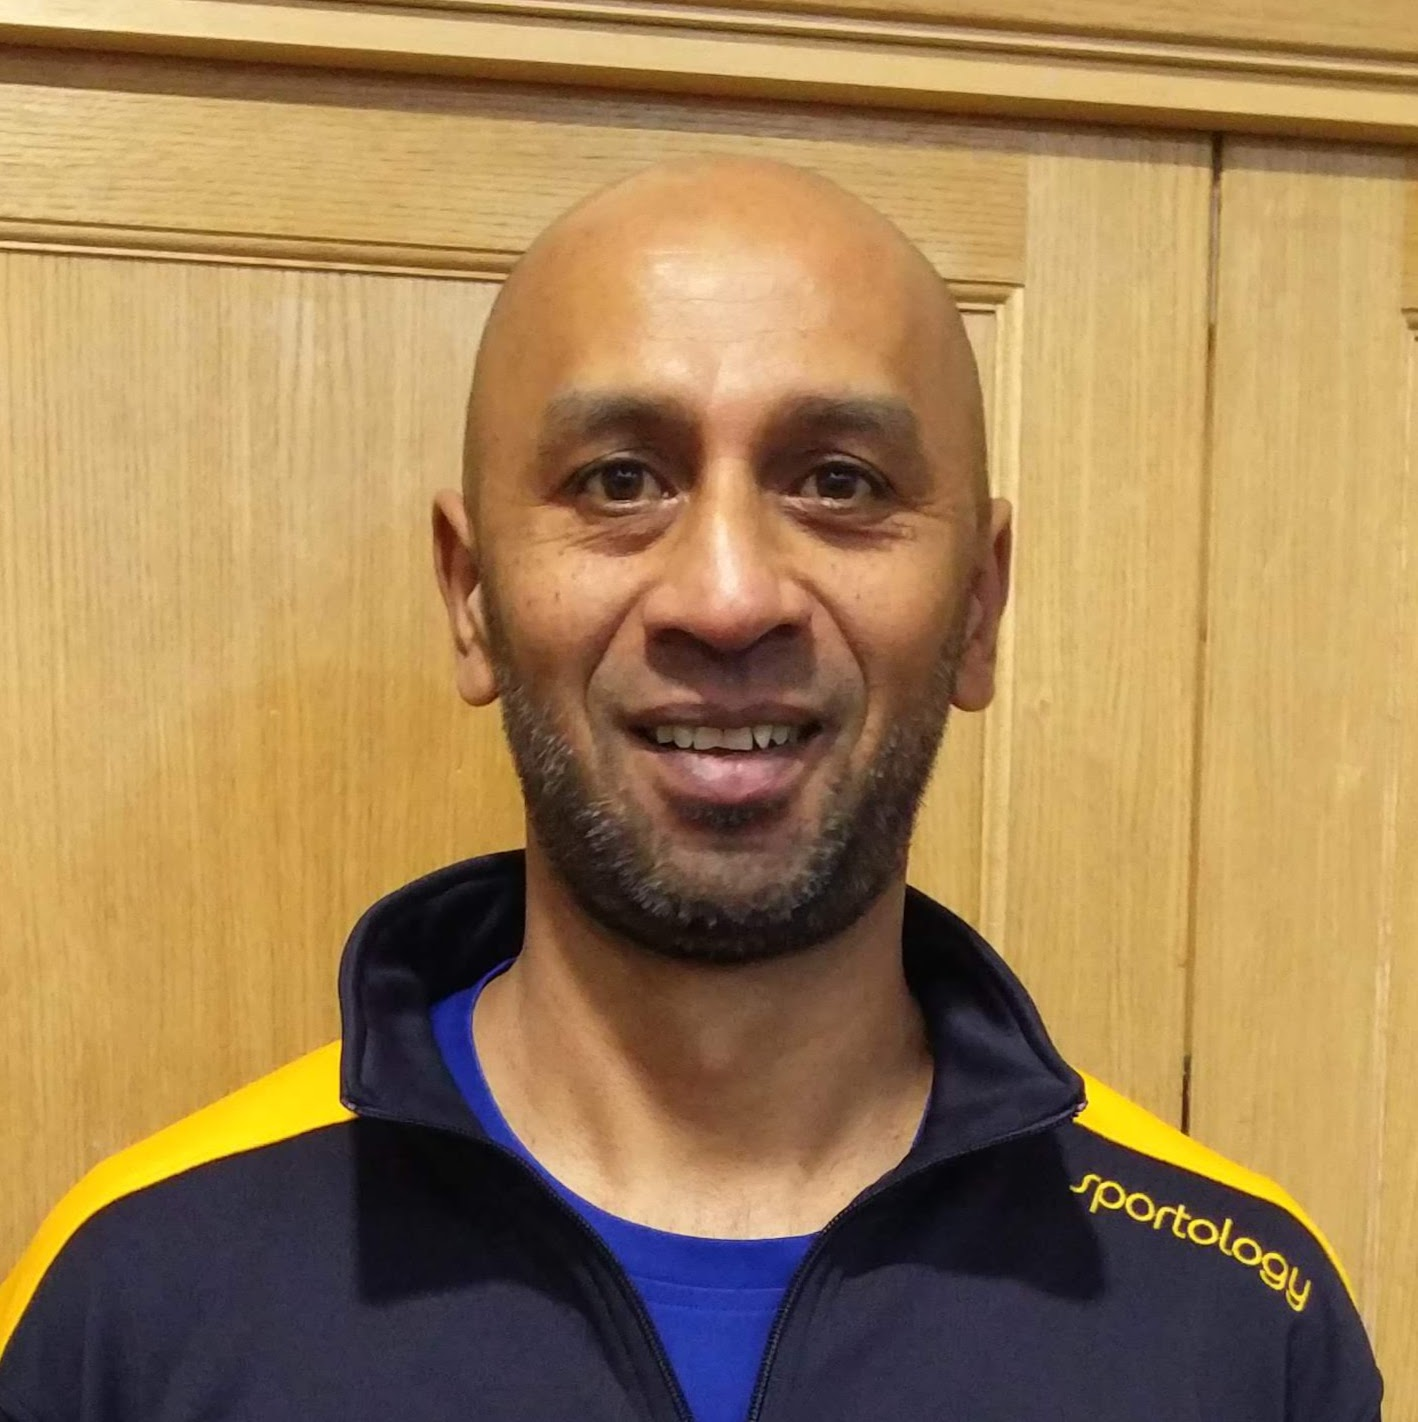 New! One-to-One Sessions with Mo Sheikh now available